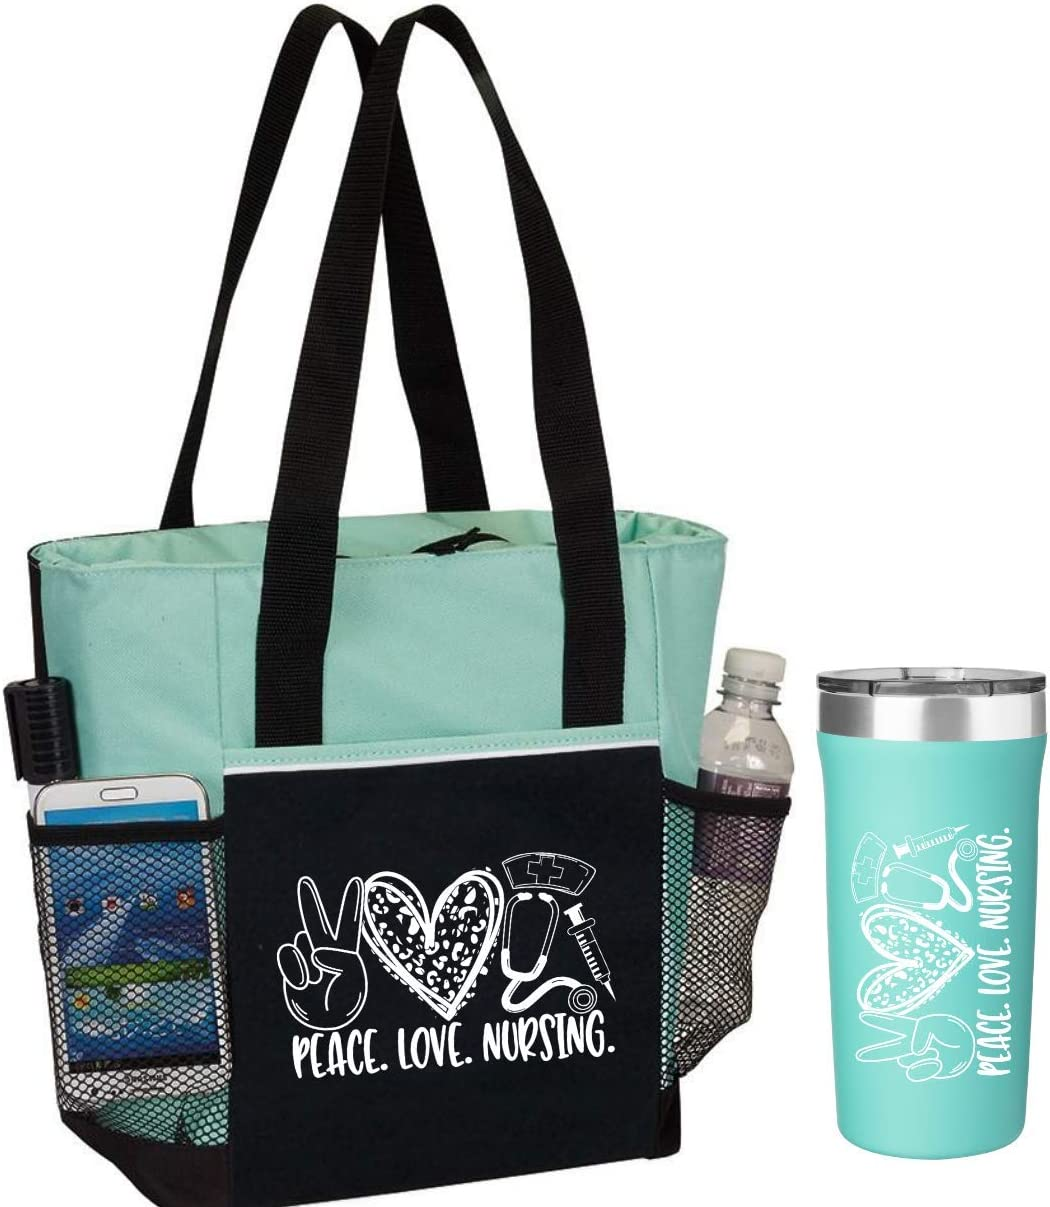 Image of a tote bag in teal and black with tumbler beside it.